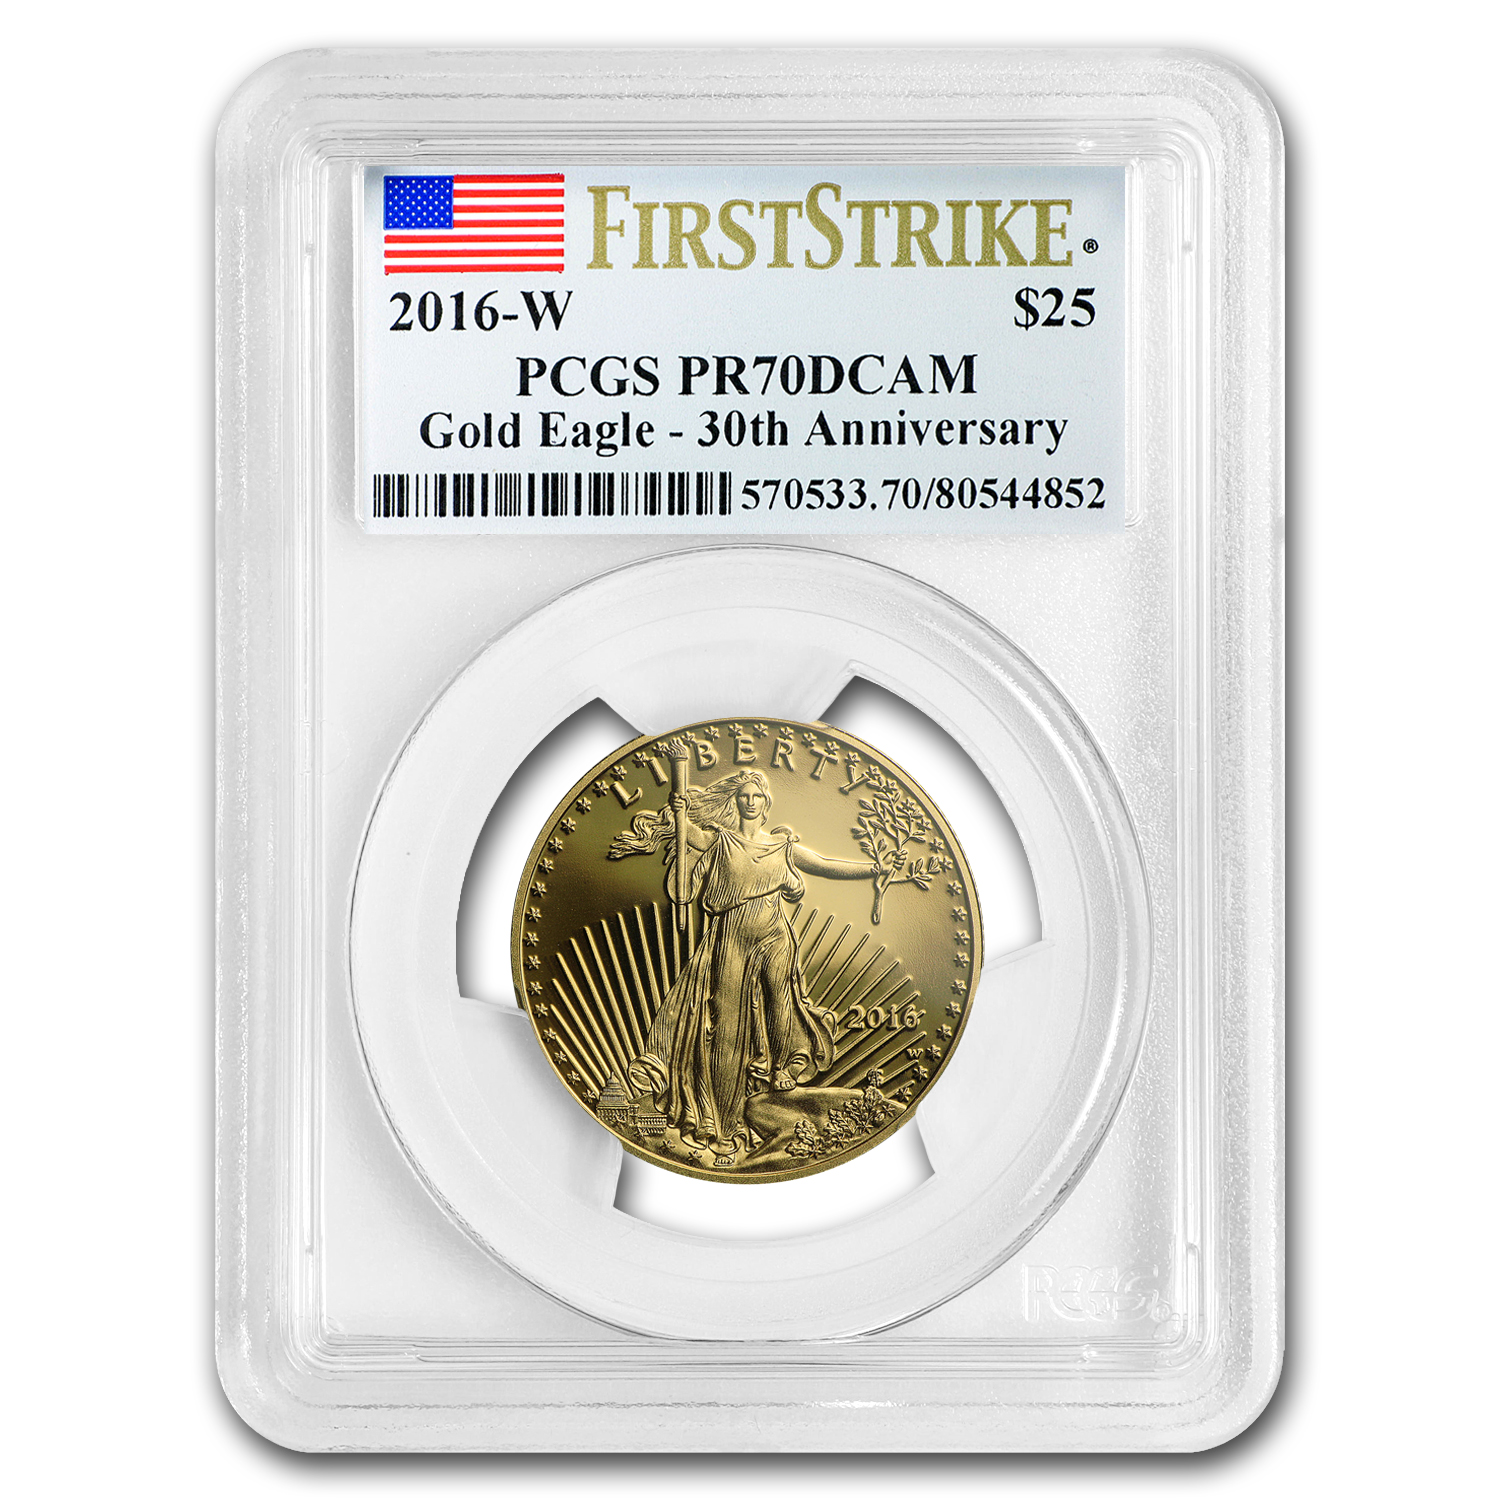 2016-W 1/2 oz Proof Gold American Eagle PR-70 PCGS (First Strike)